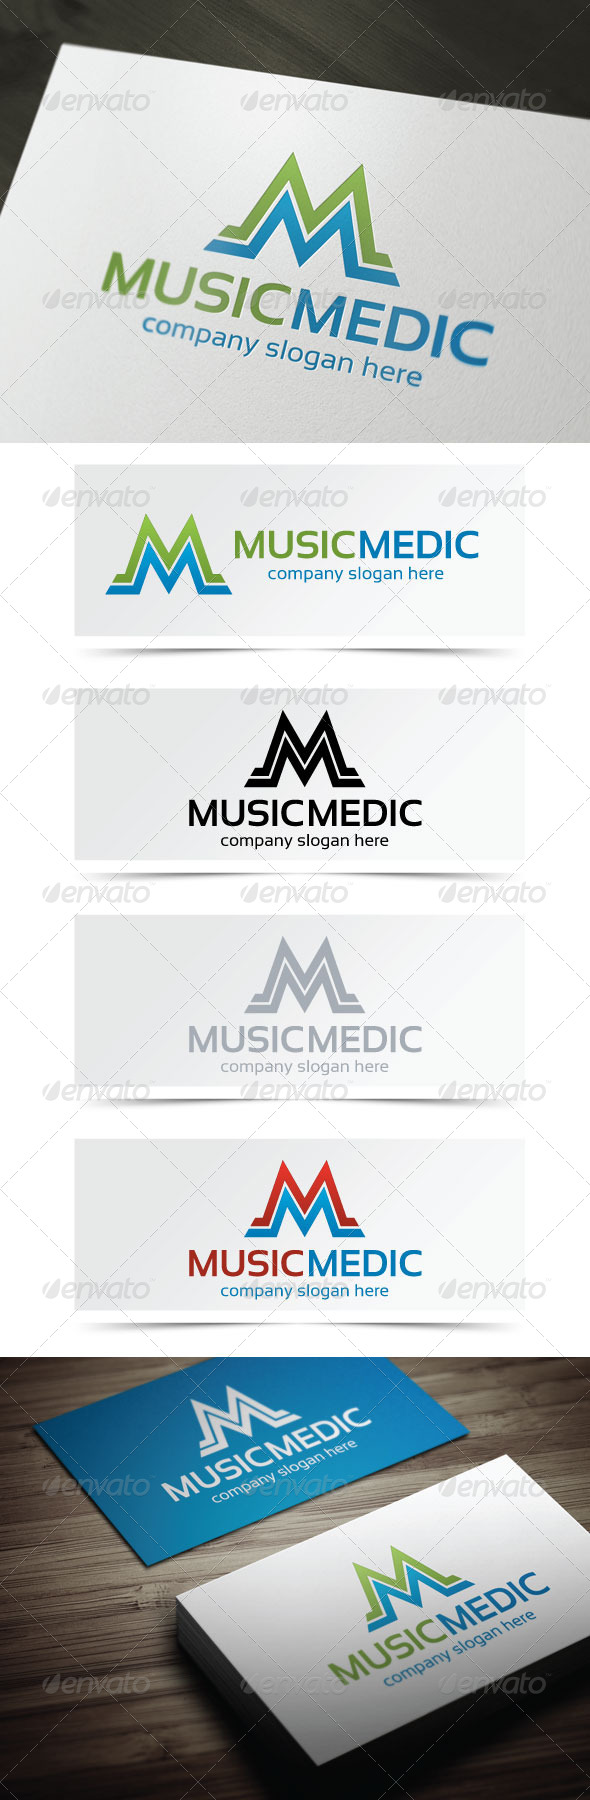 Music Medic - Letters Logo Templates